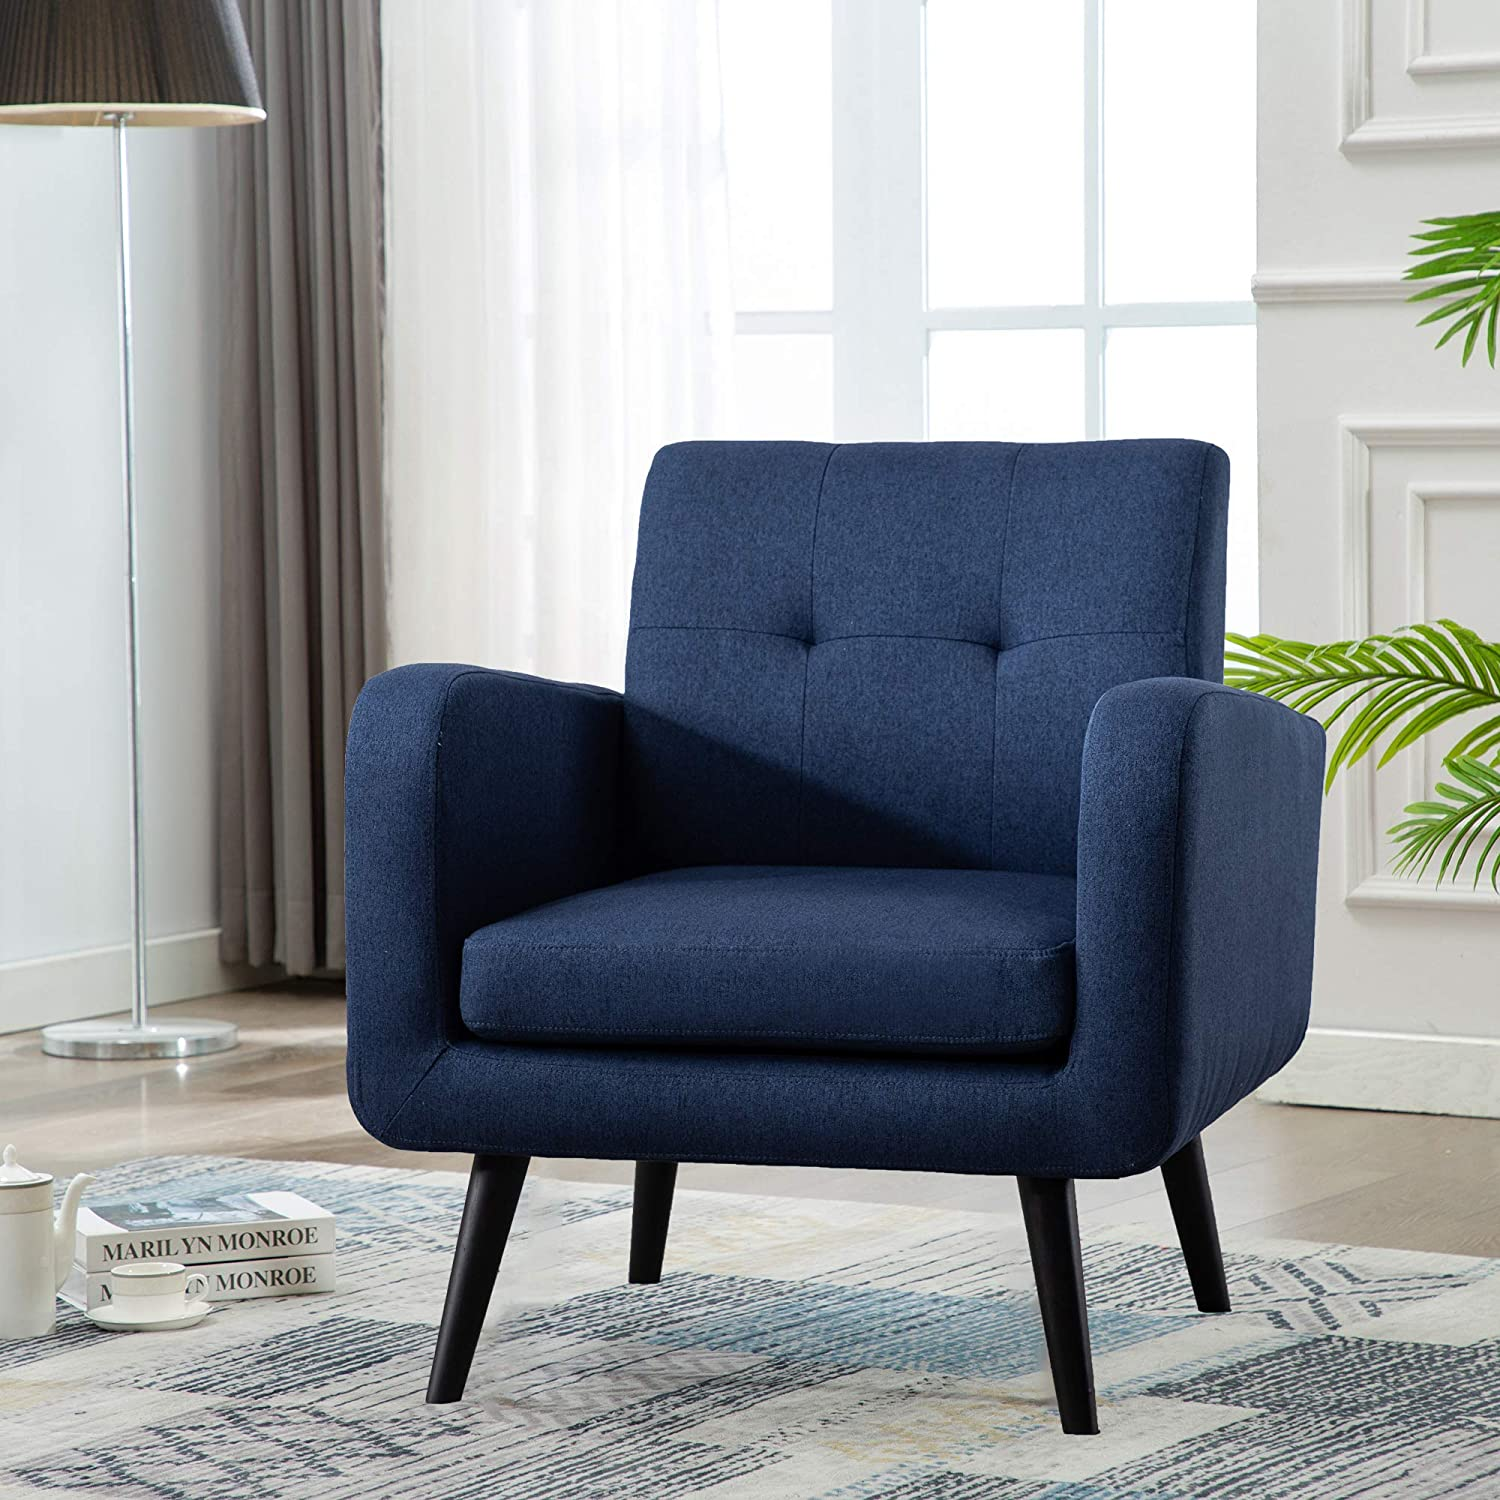 Mid Special sale item Century Modern Fabric Arm Room Roo Limited time for free shipping Living Chairs